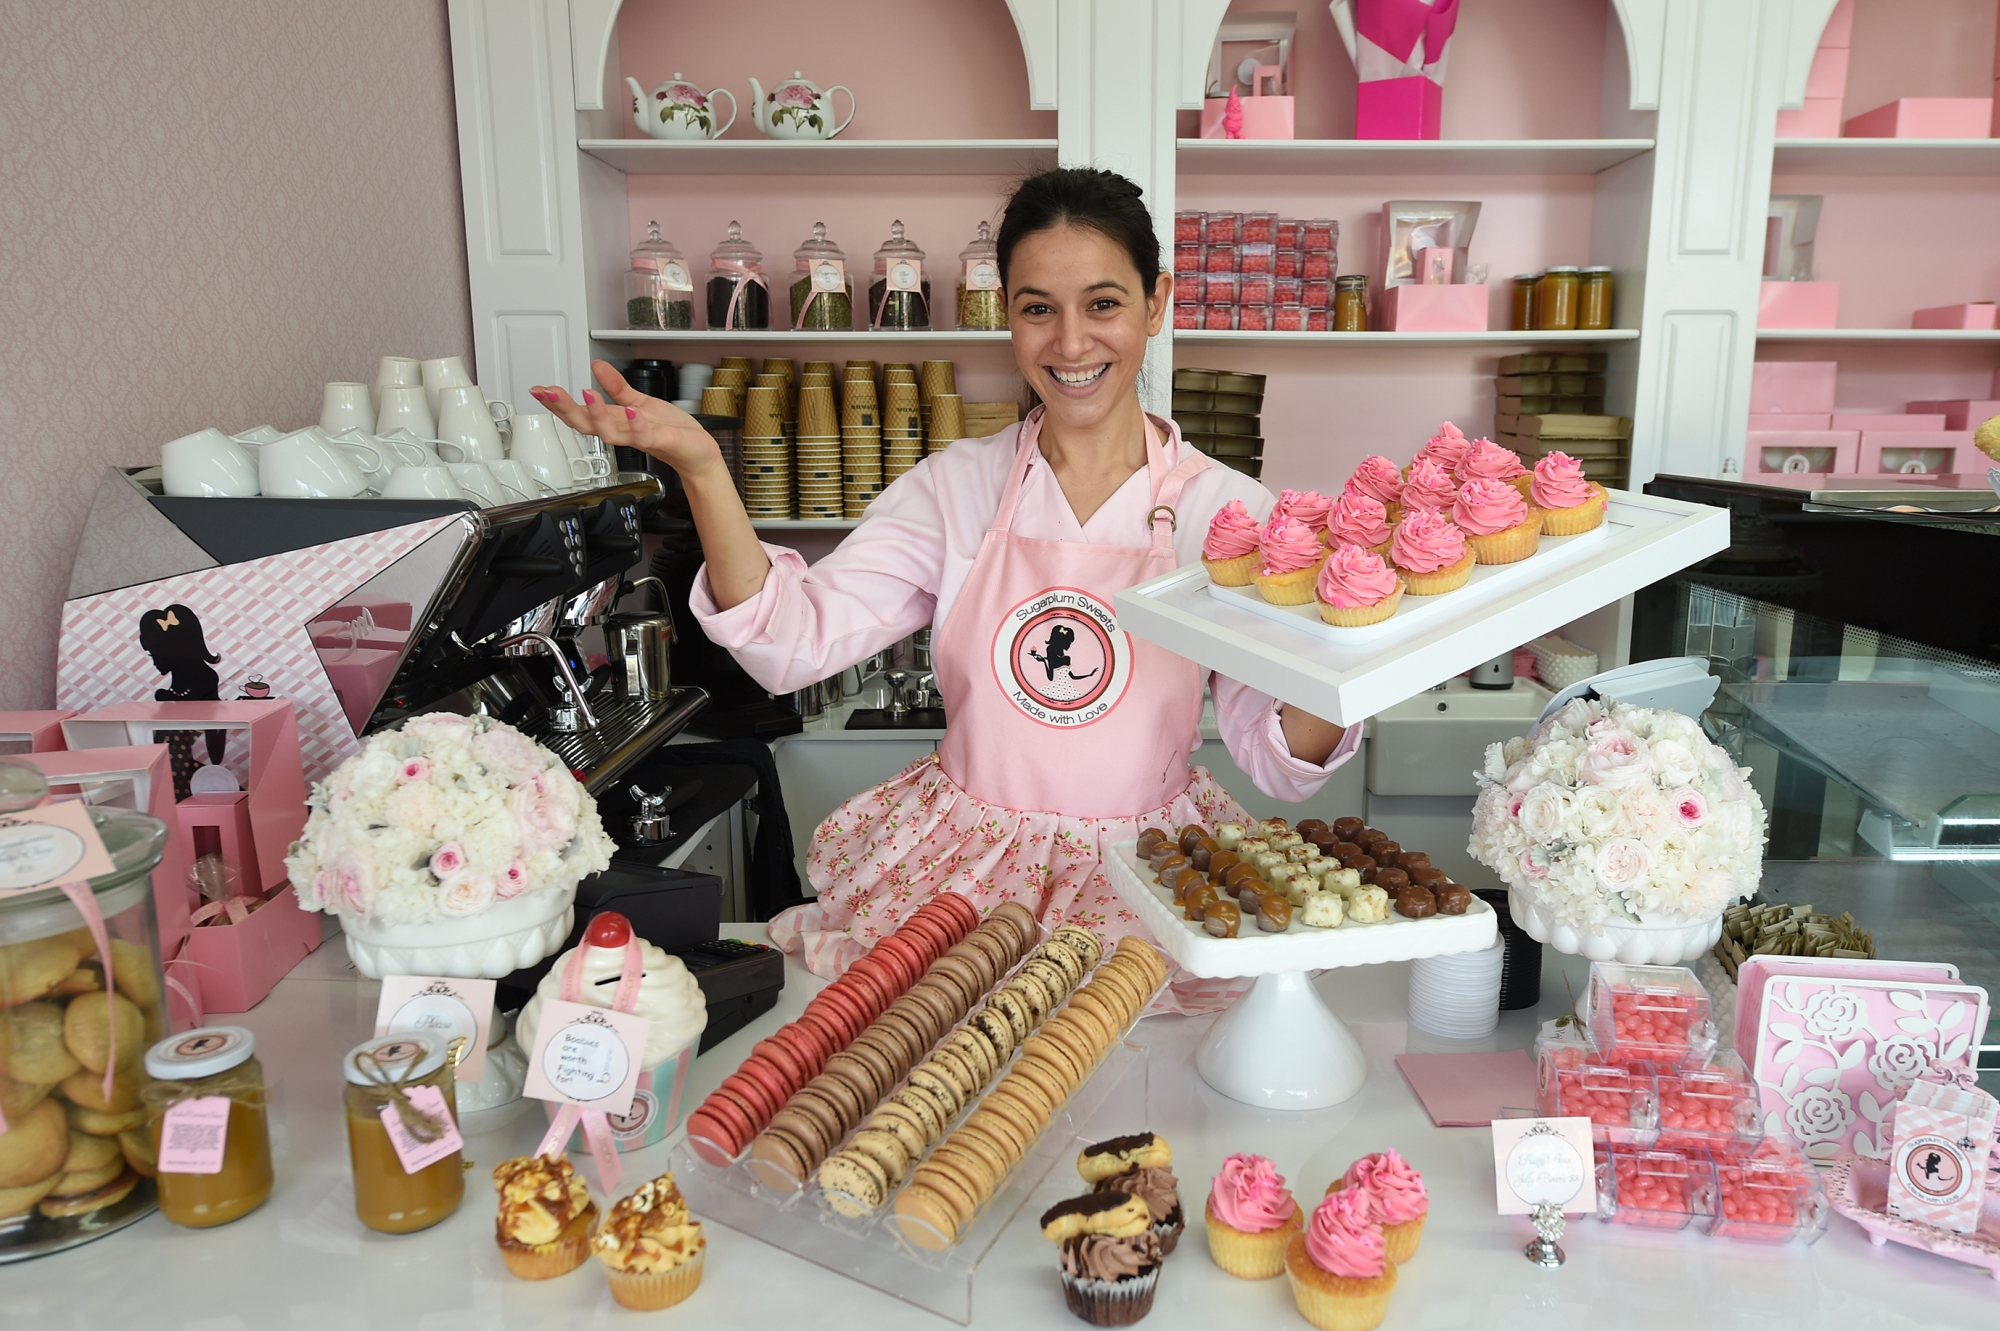 Sugarplum Sweets owner Flavia Harris.